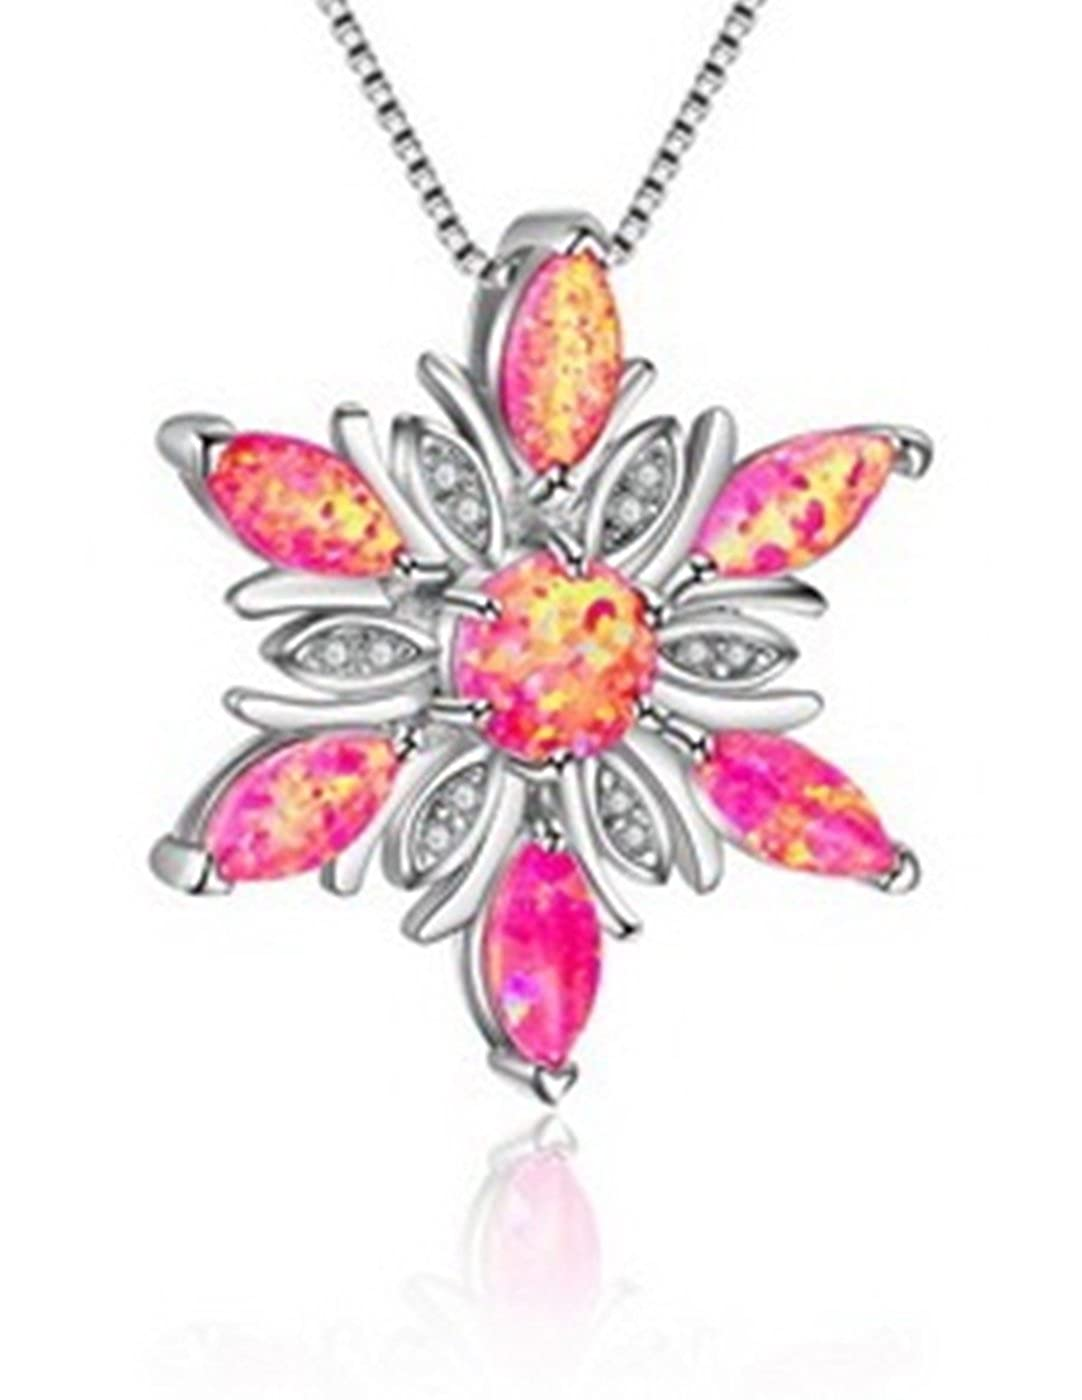 Fortonatori Created Pink Opal Flower Necklace 925 Silver Pendant Necklace 18 Chain